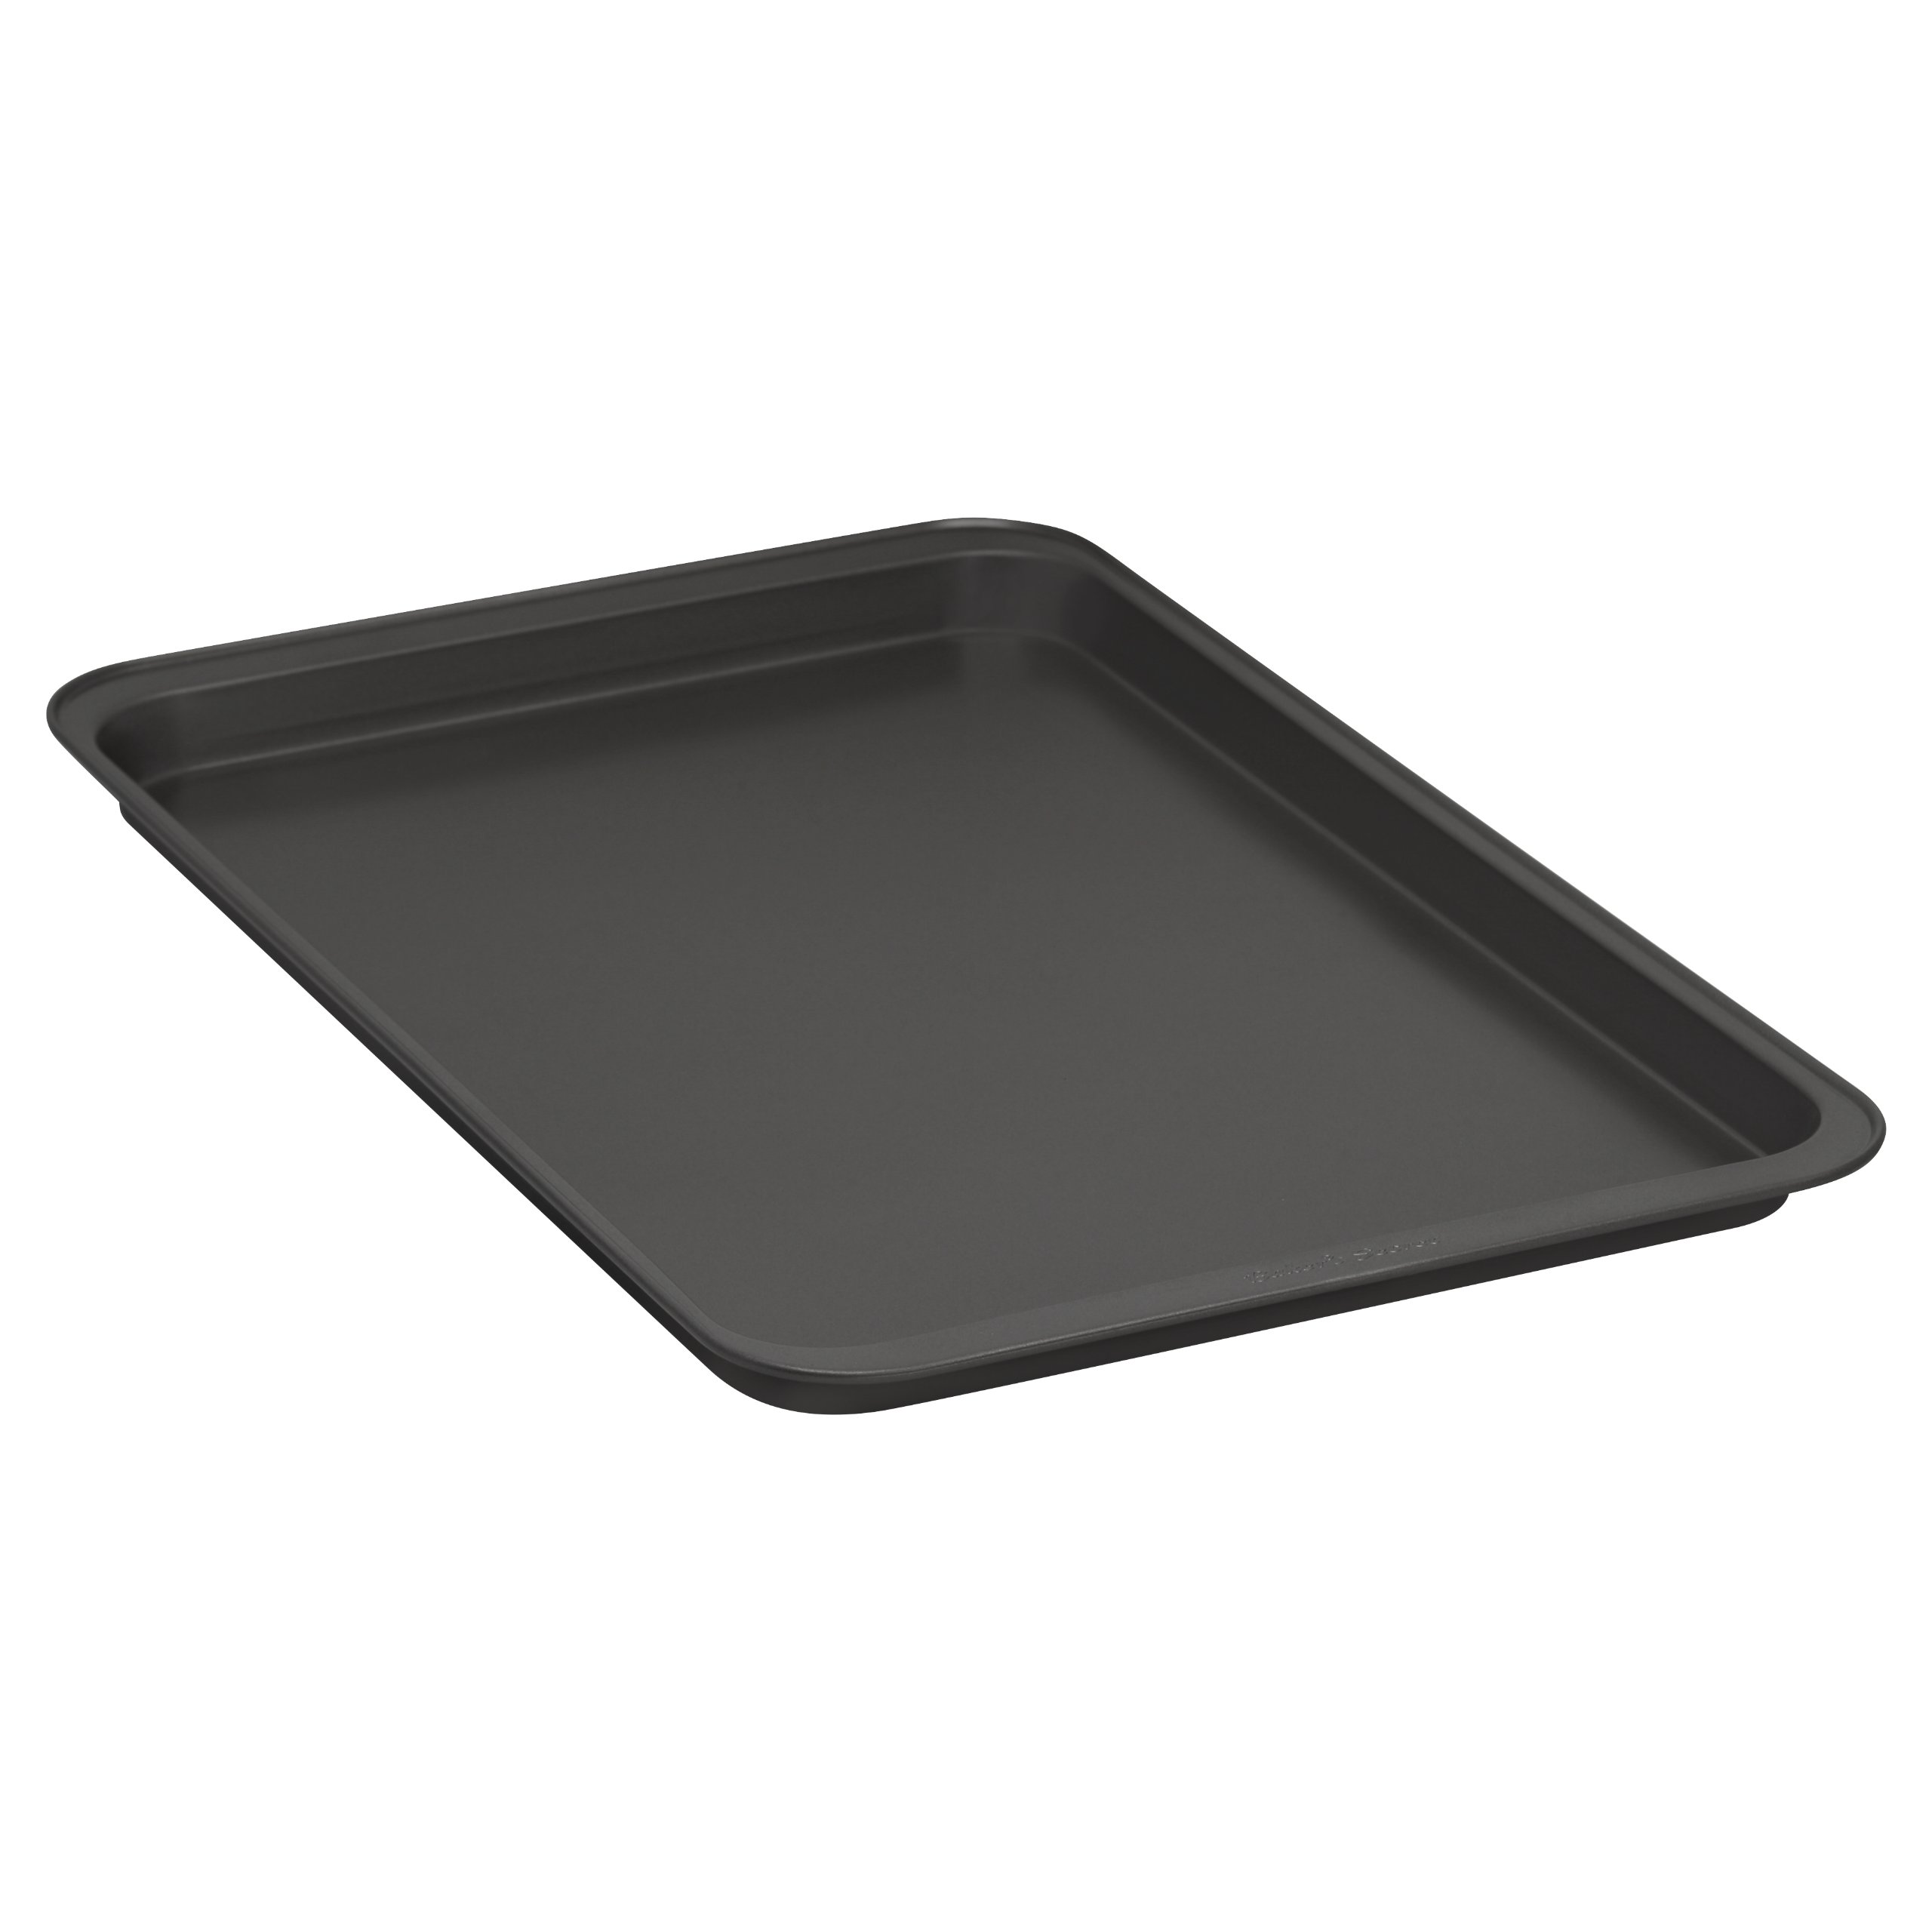 Baker's Secret 1114363 Essentials Cookie Sheet, Large